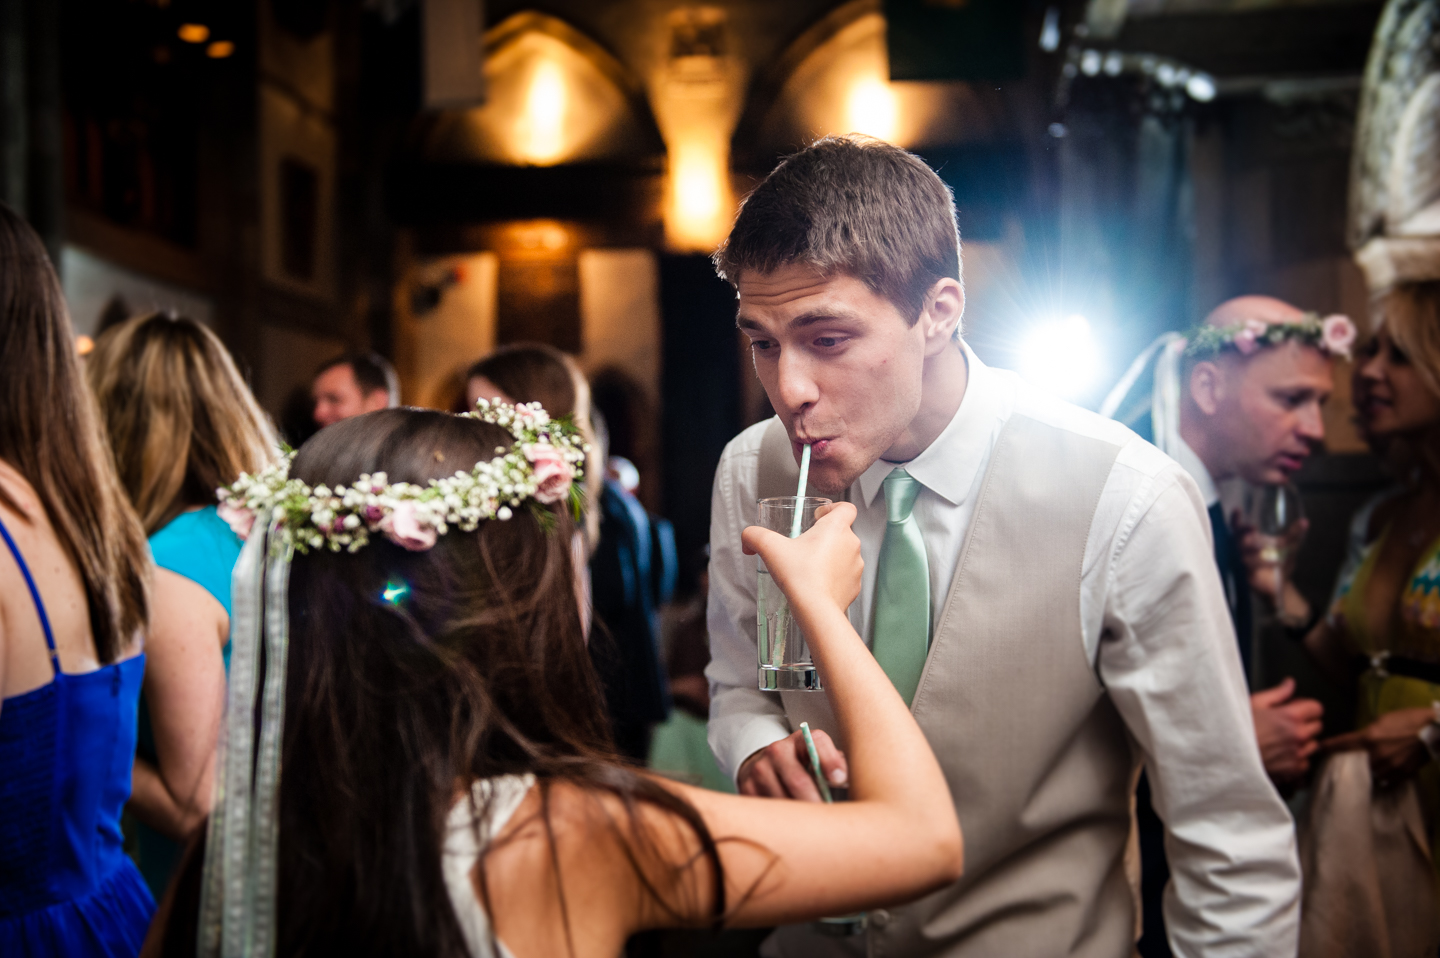 flower girl shares her drink with the groom during wedding reception